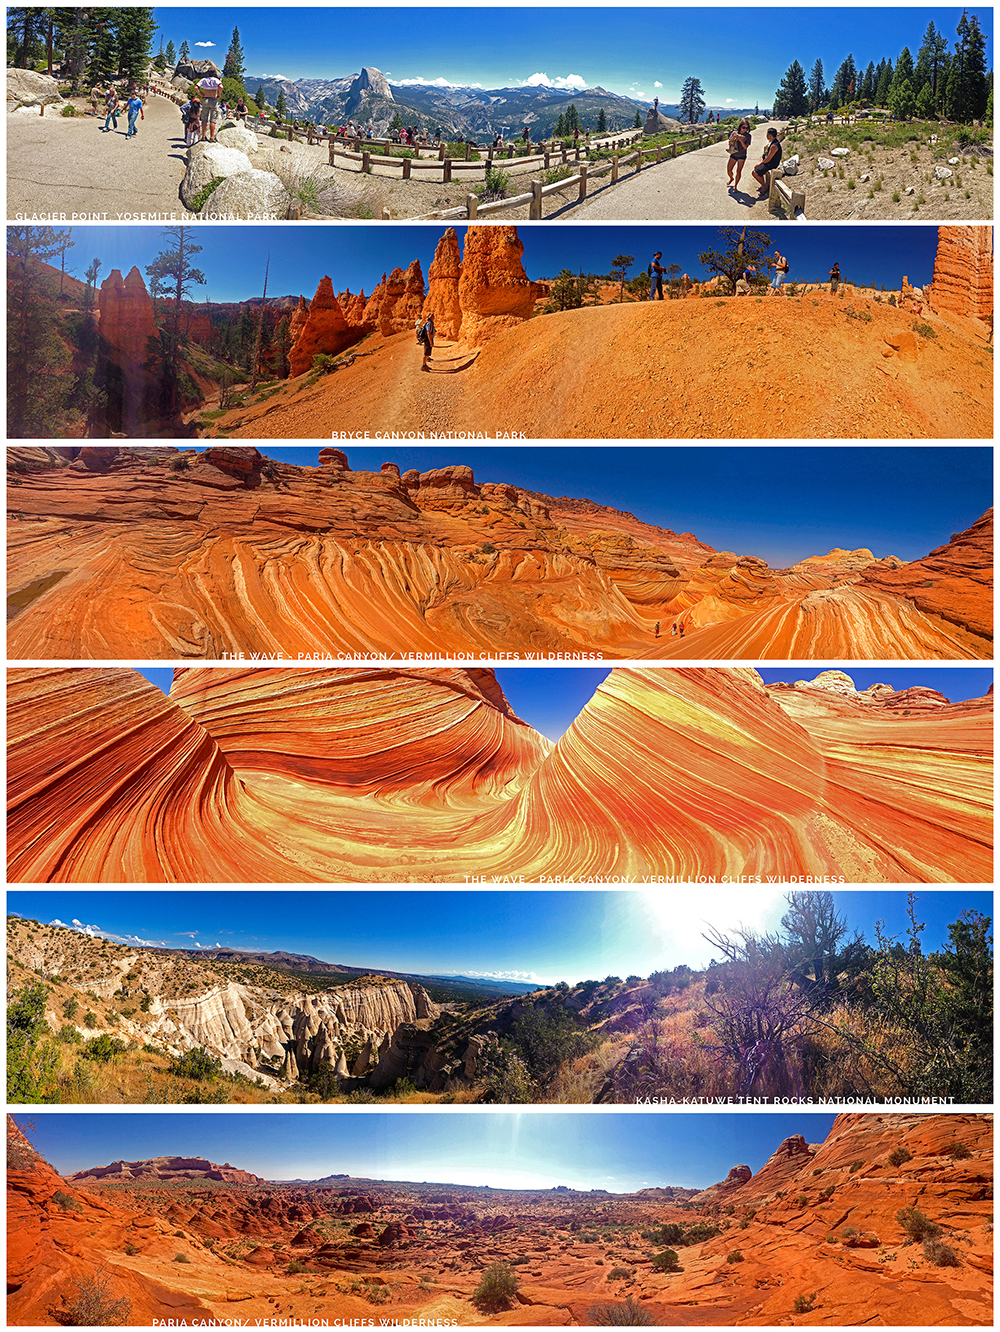 American Southwest 2014 Panorama Poster_04